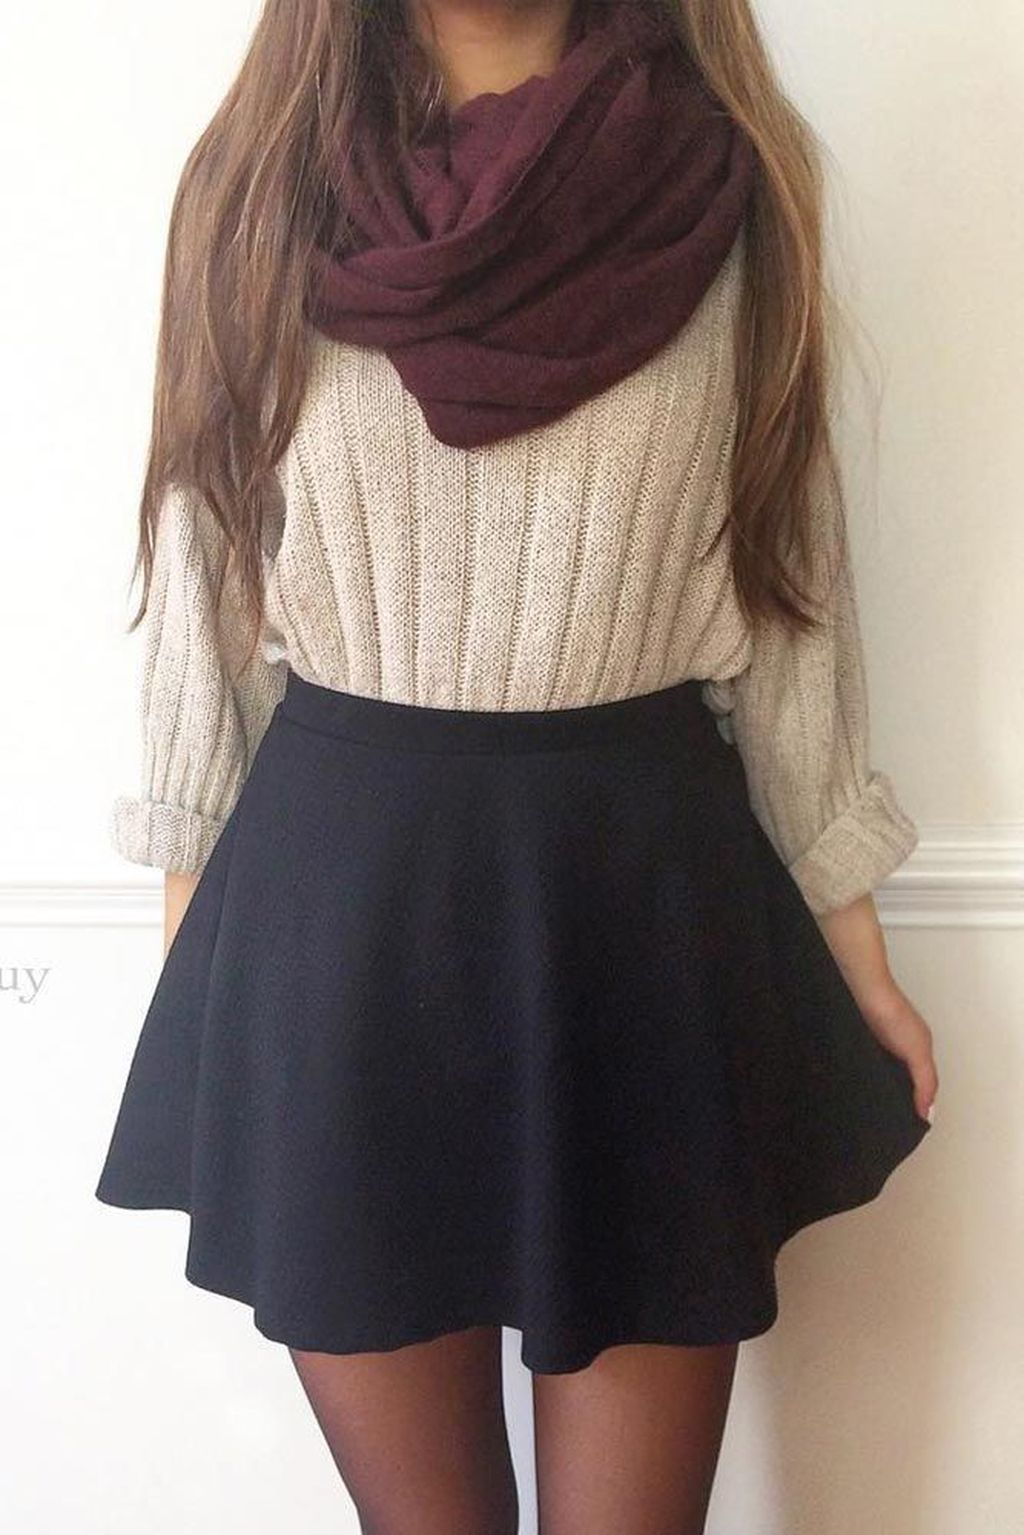 Pin by Lydia Rubio on Outfits | Outfits, Cute outfits ...